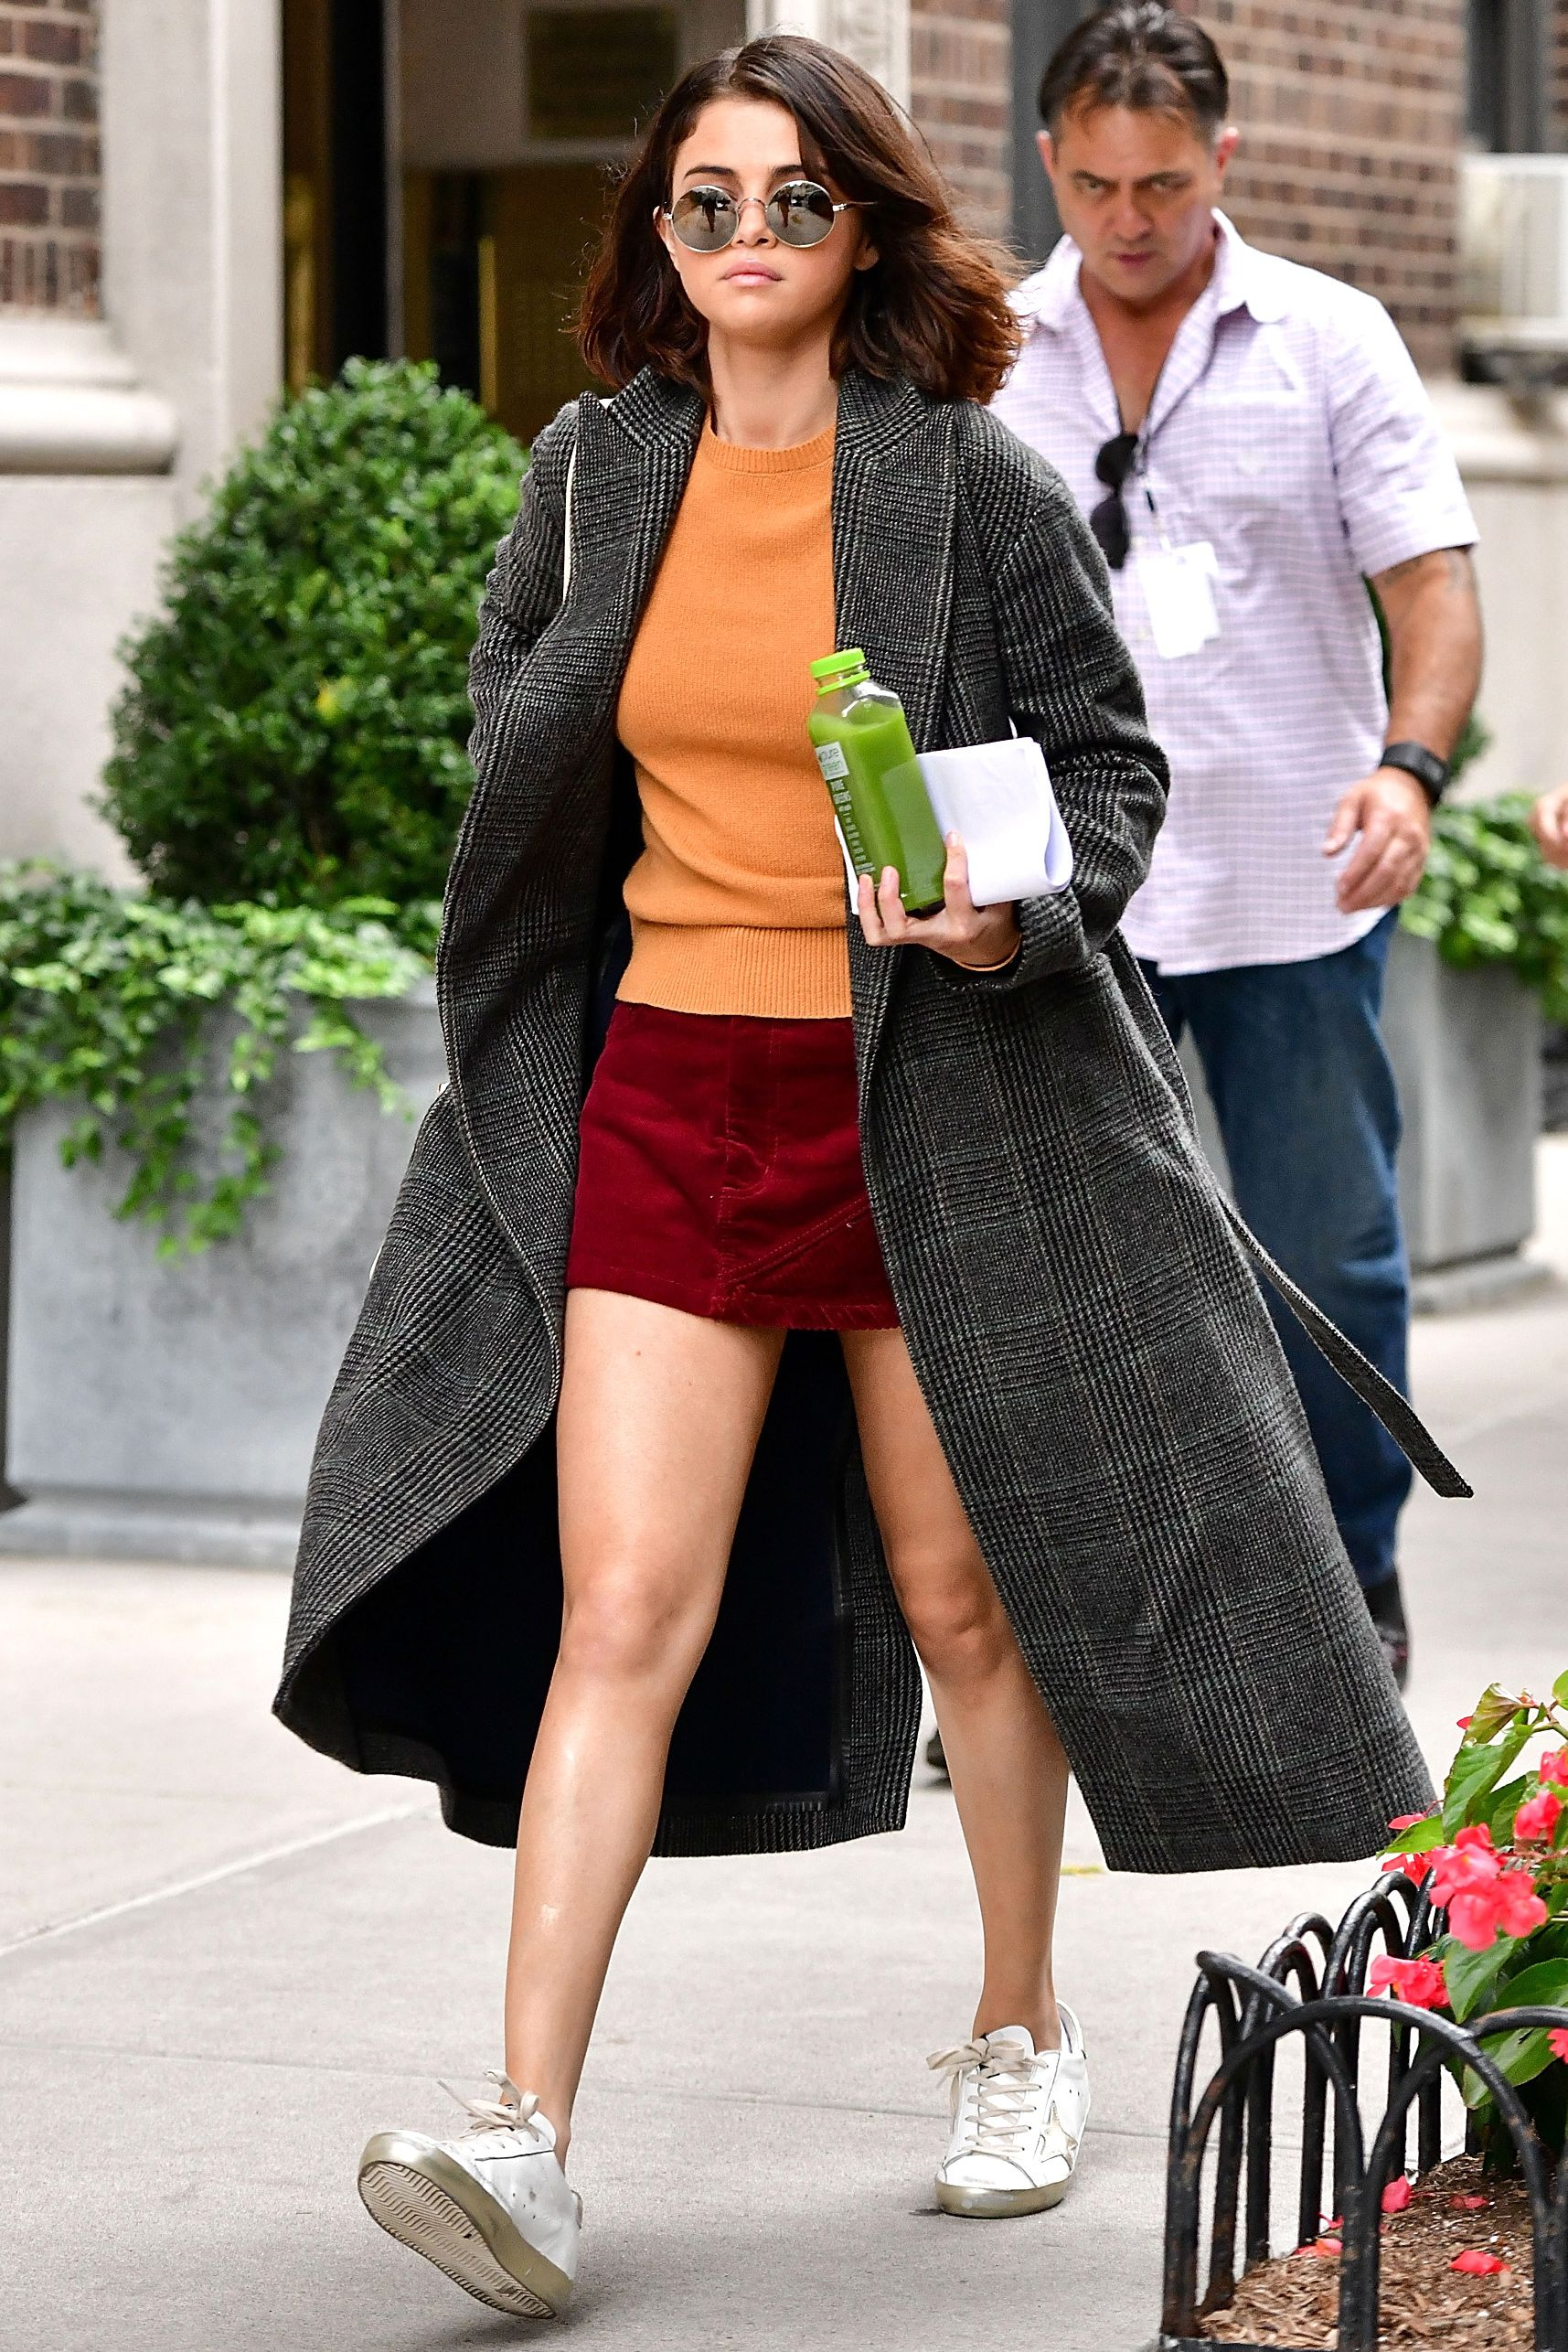 Standout Celeb Looks Straight From France forecast